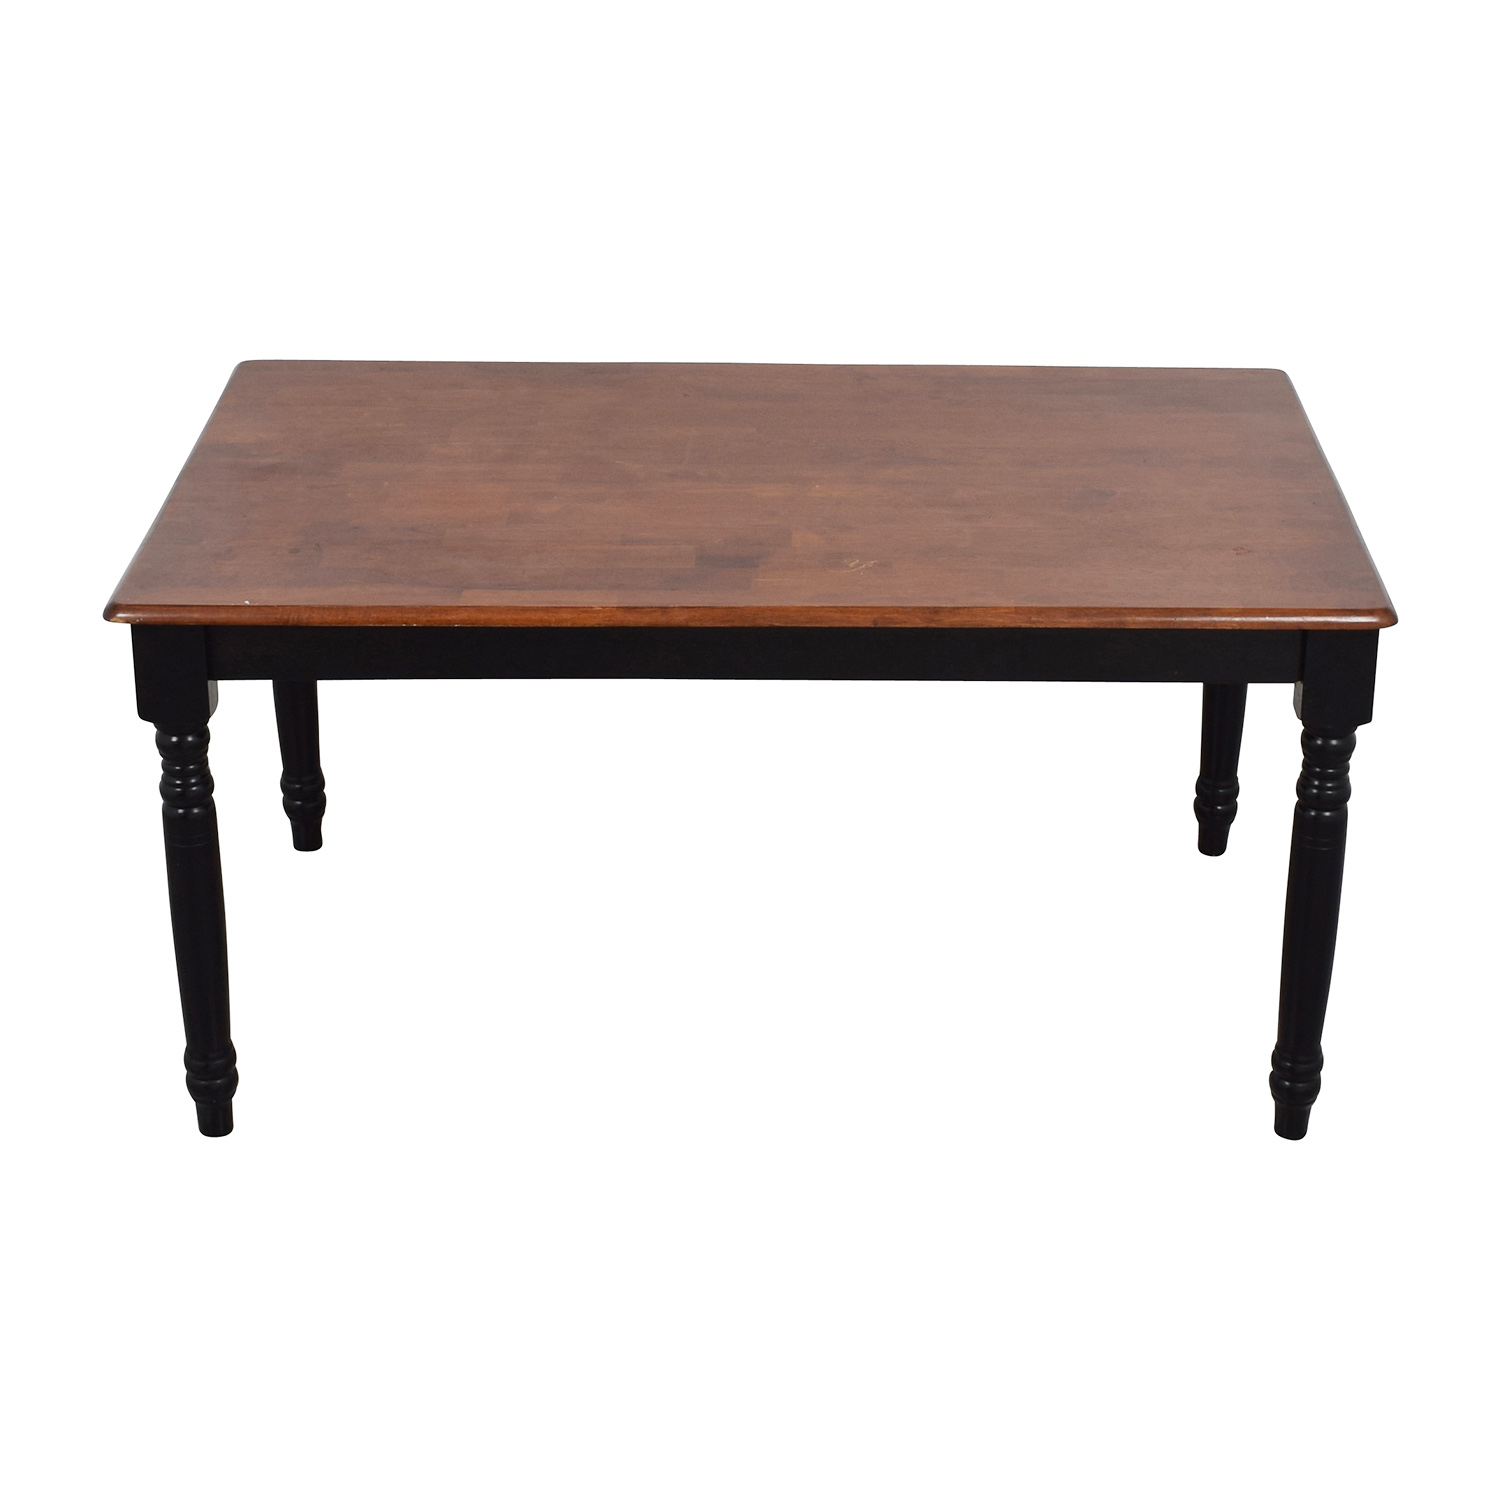 Real Wood Dining Table / Dinner Tables